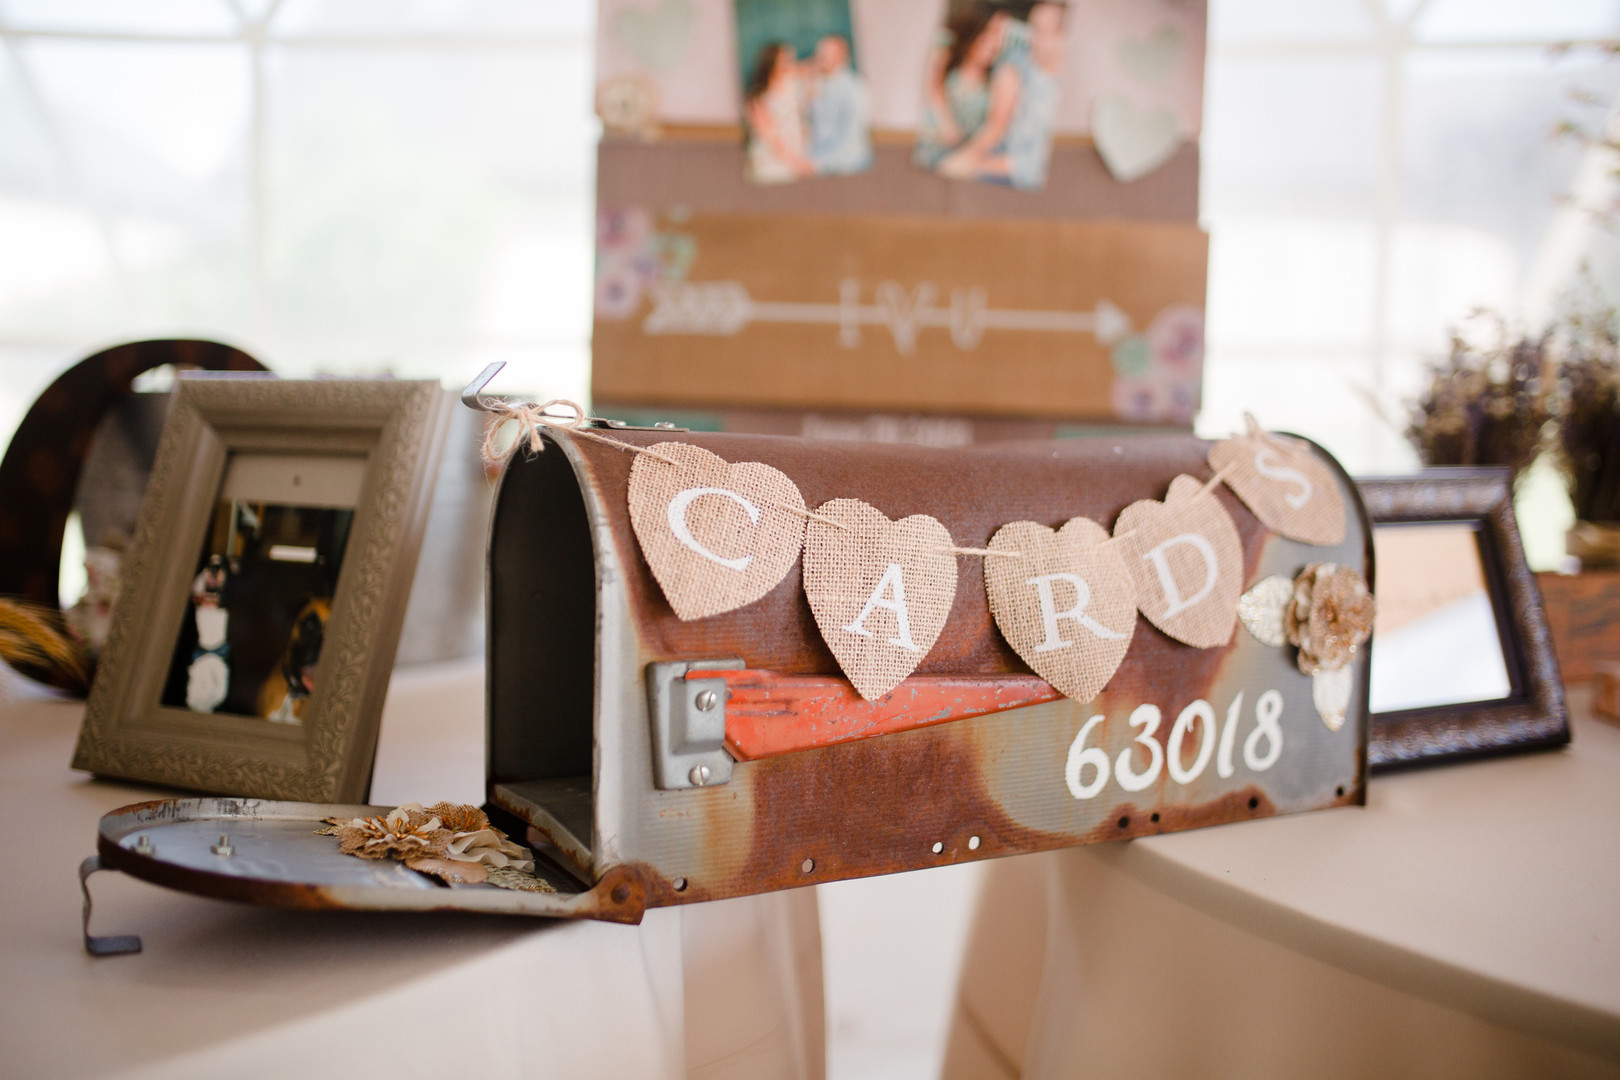 Wedding card table: Rustic country wedding in Minooka, IL captured by Katie Brsan Photography. Visit CHItheeWED.com for more wedding inspiration!